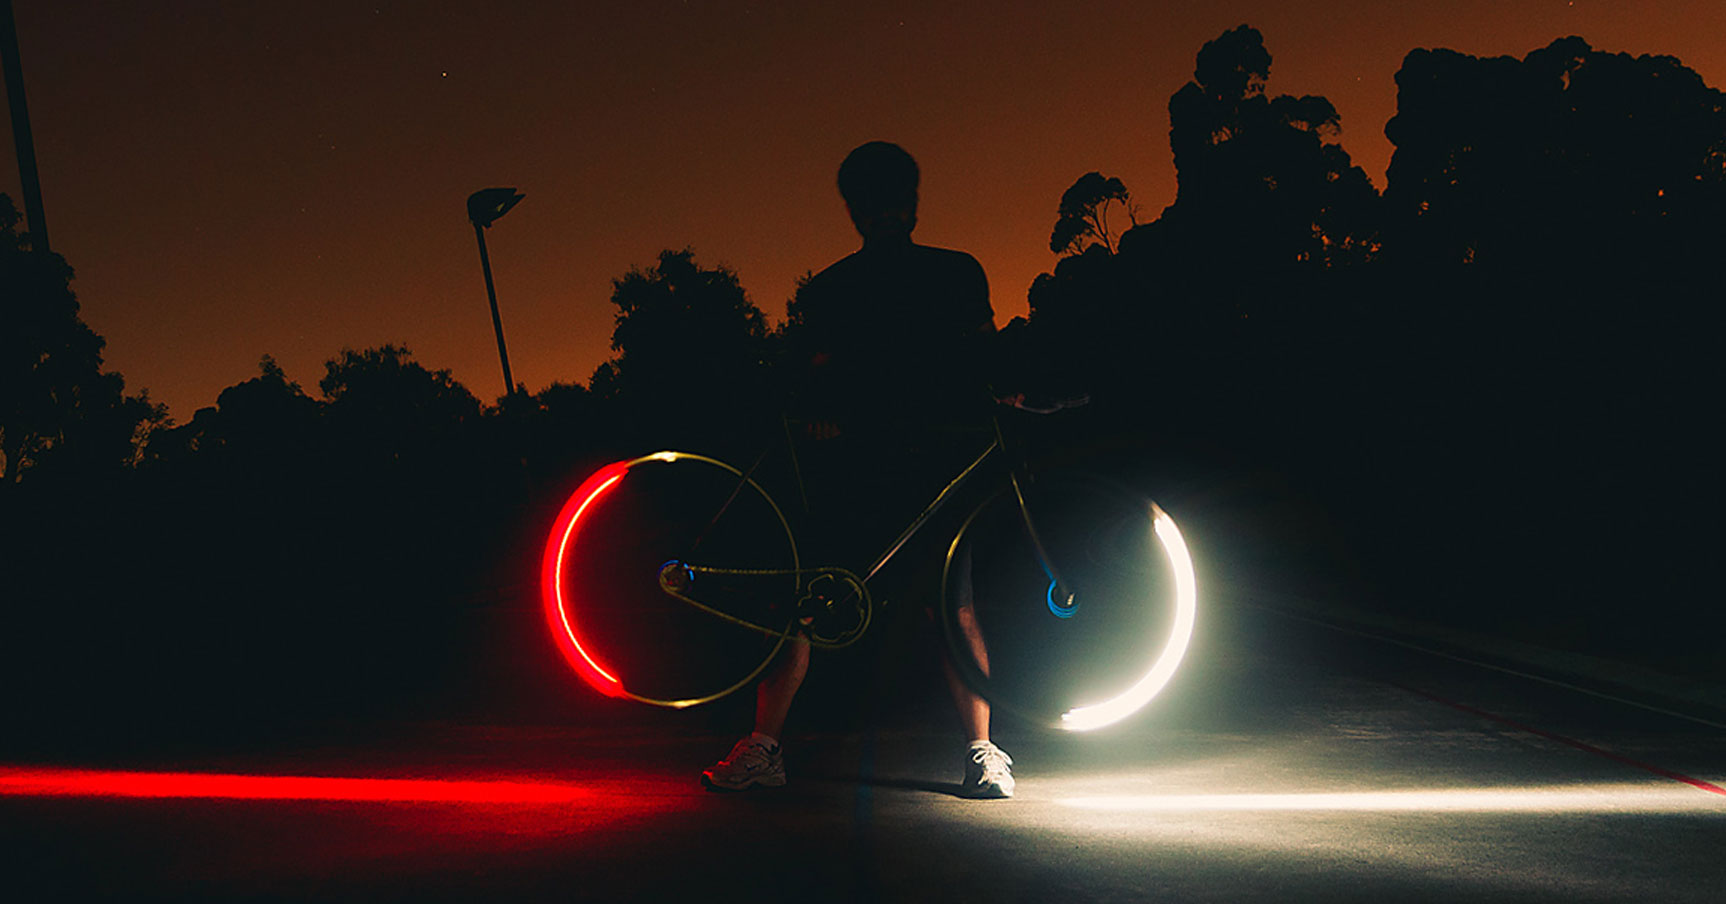 Revolights Bicycle Lighting System The Future Of Bicycle